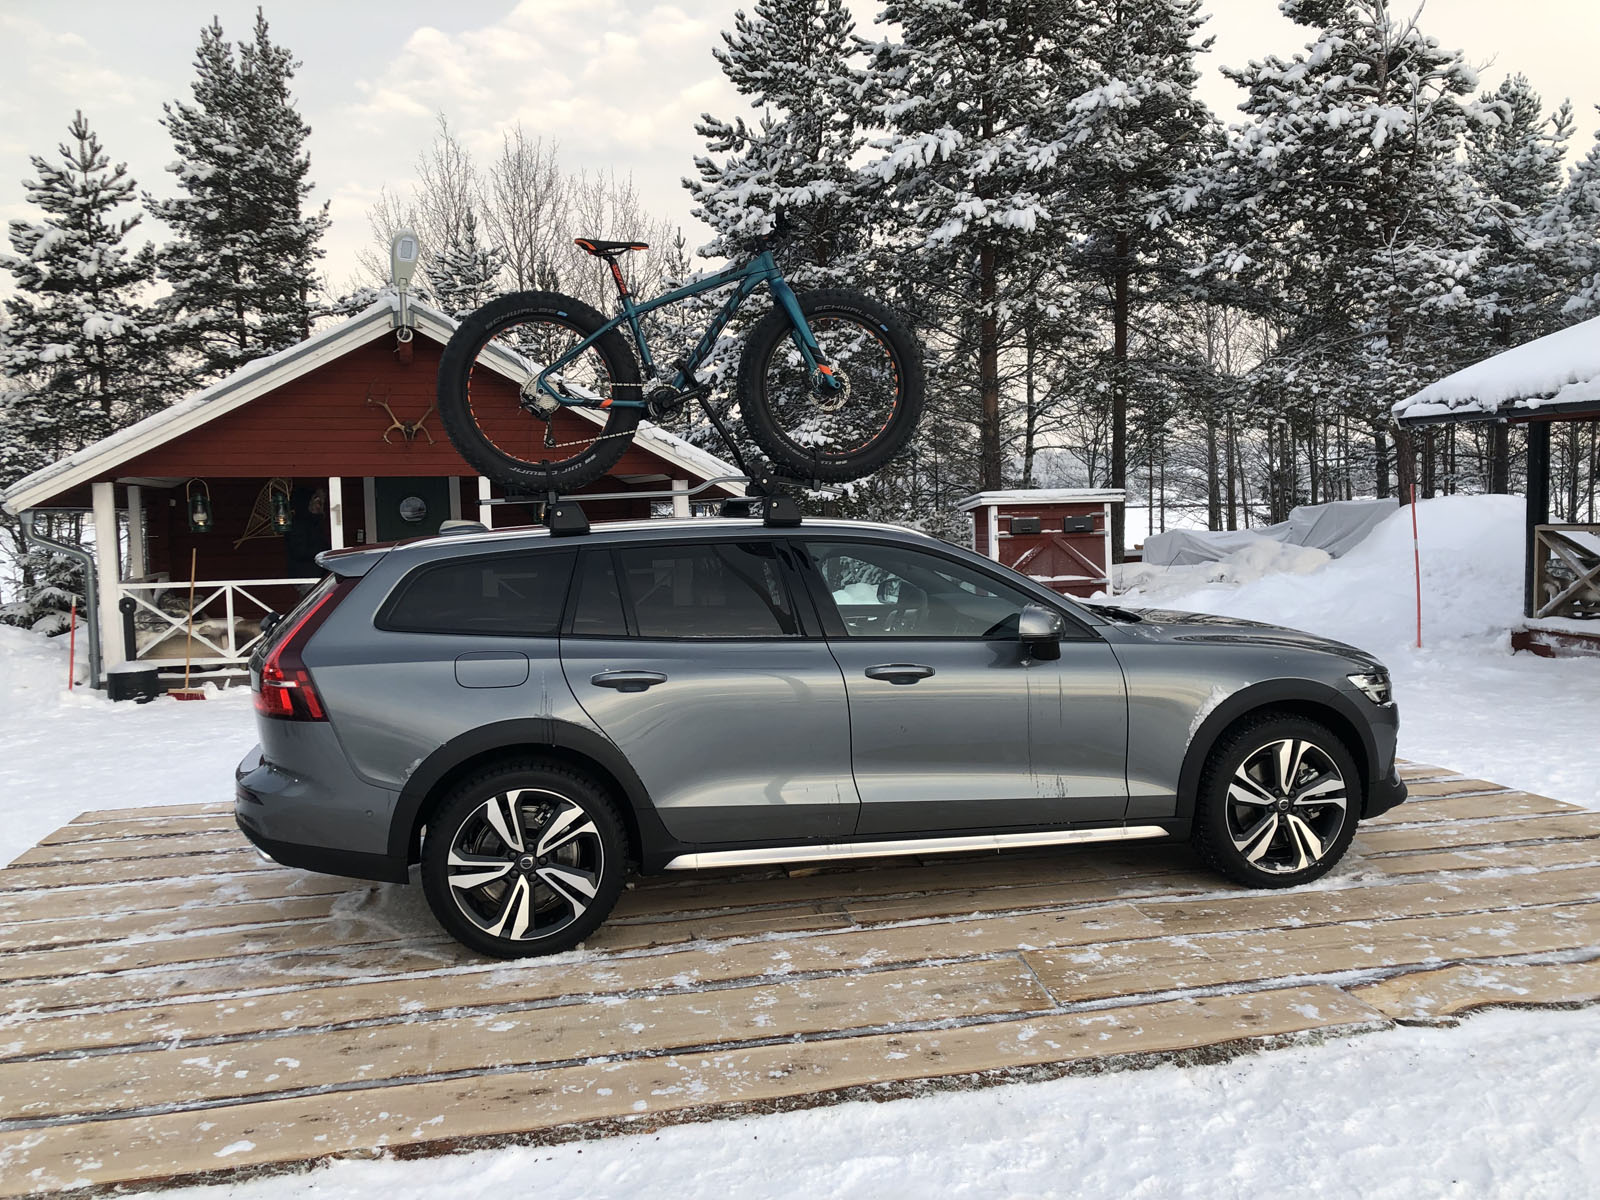 2019 volvo v60 cross country first drive review  the good old days are back